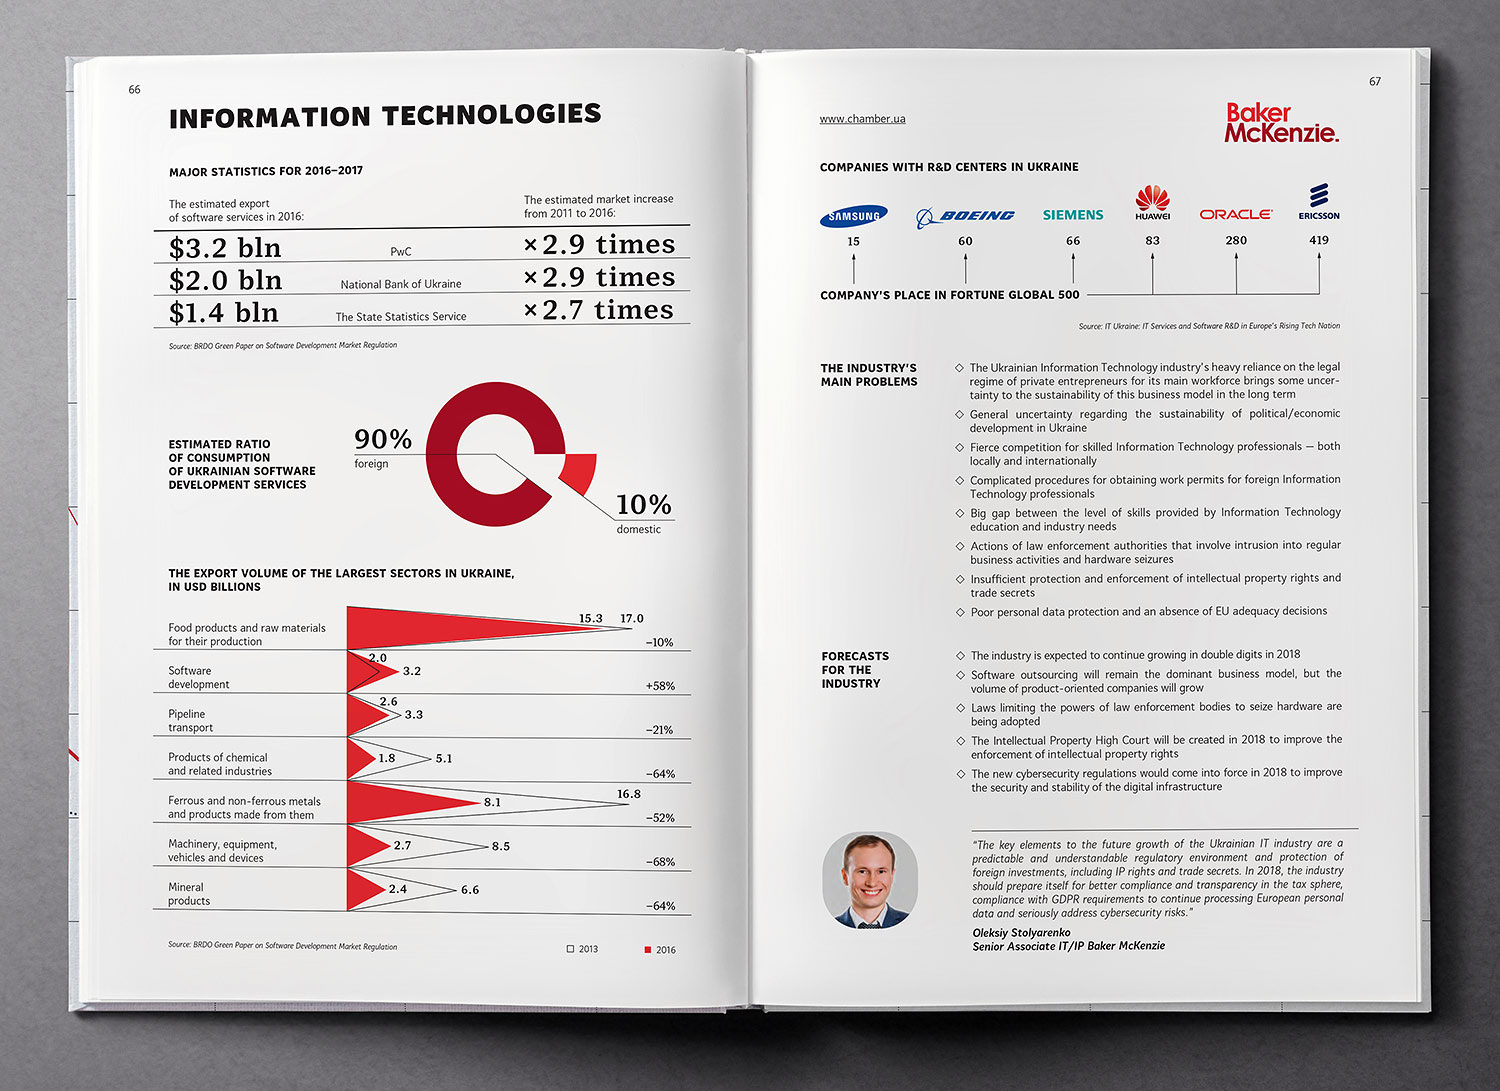 Information Technology. IT infographic design. Ukraine Country Profile 2018 book.